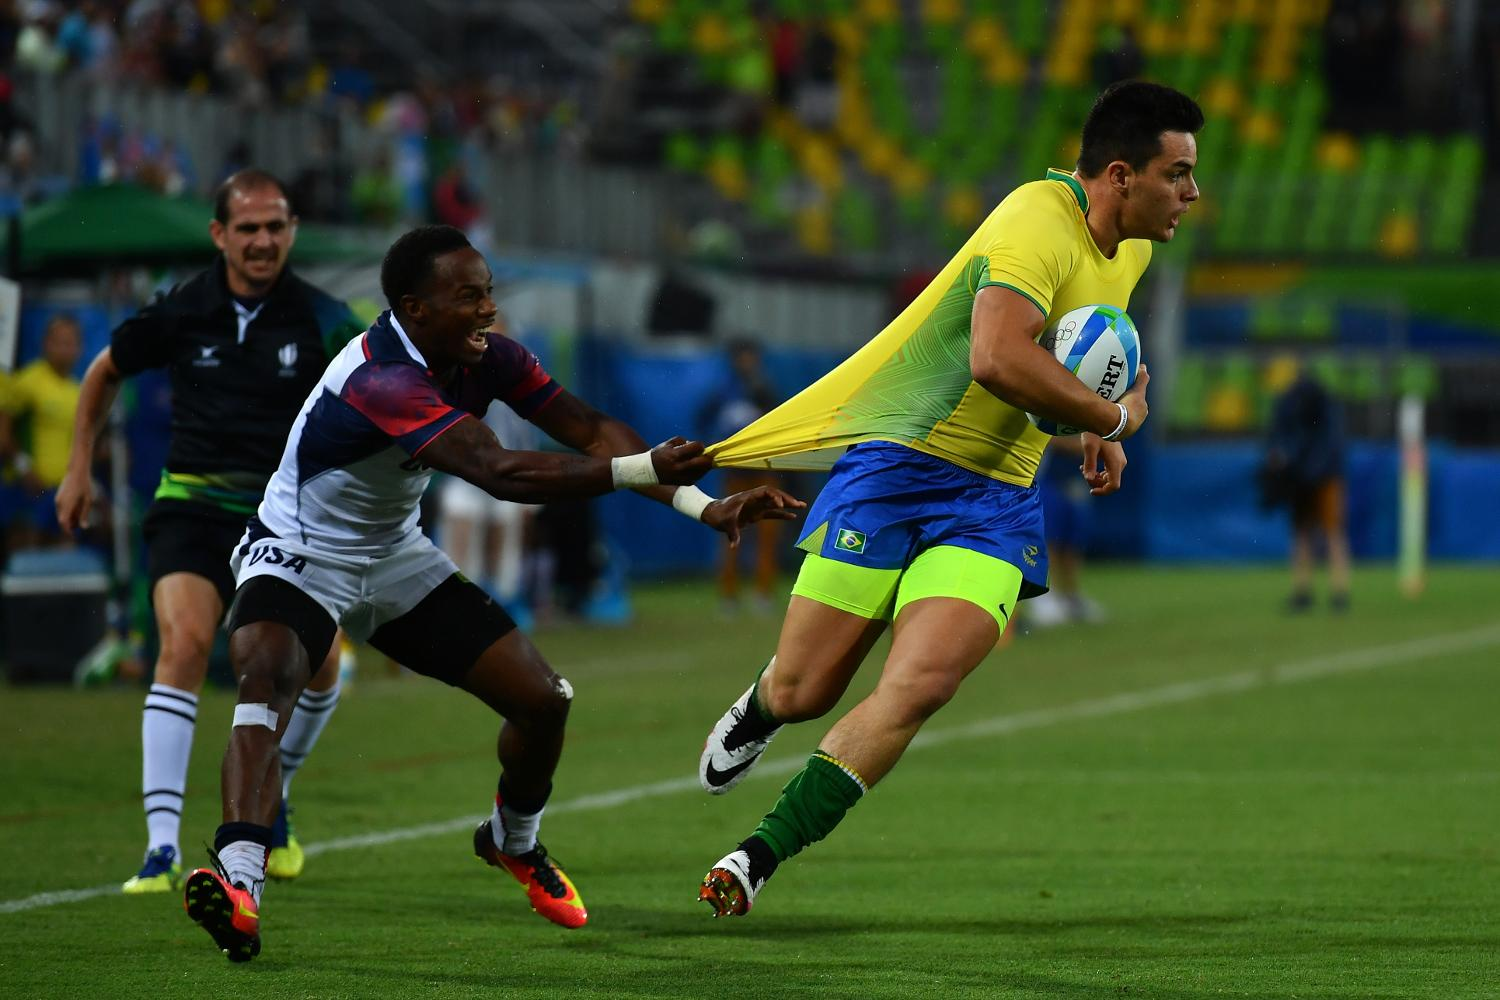 Rugby - Olympics: Day 5